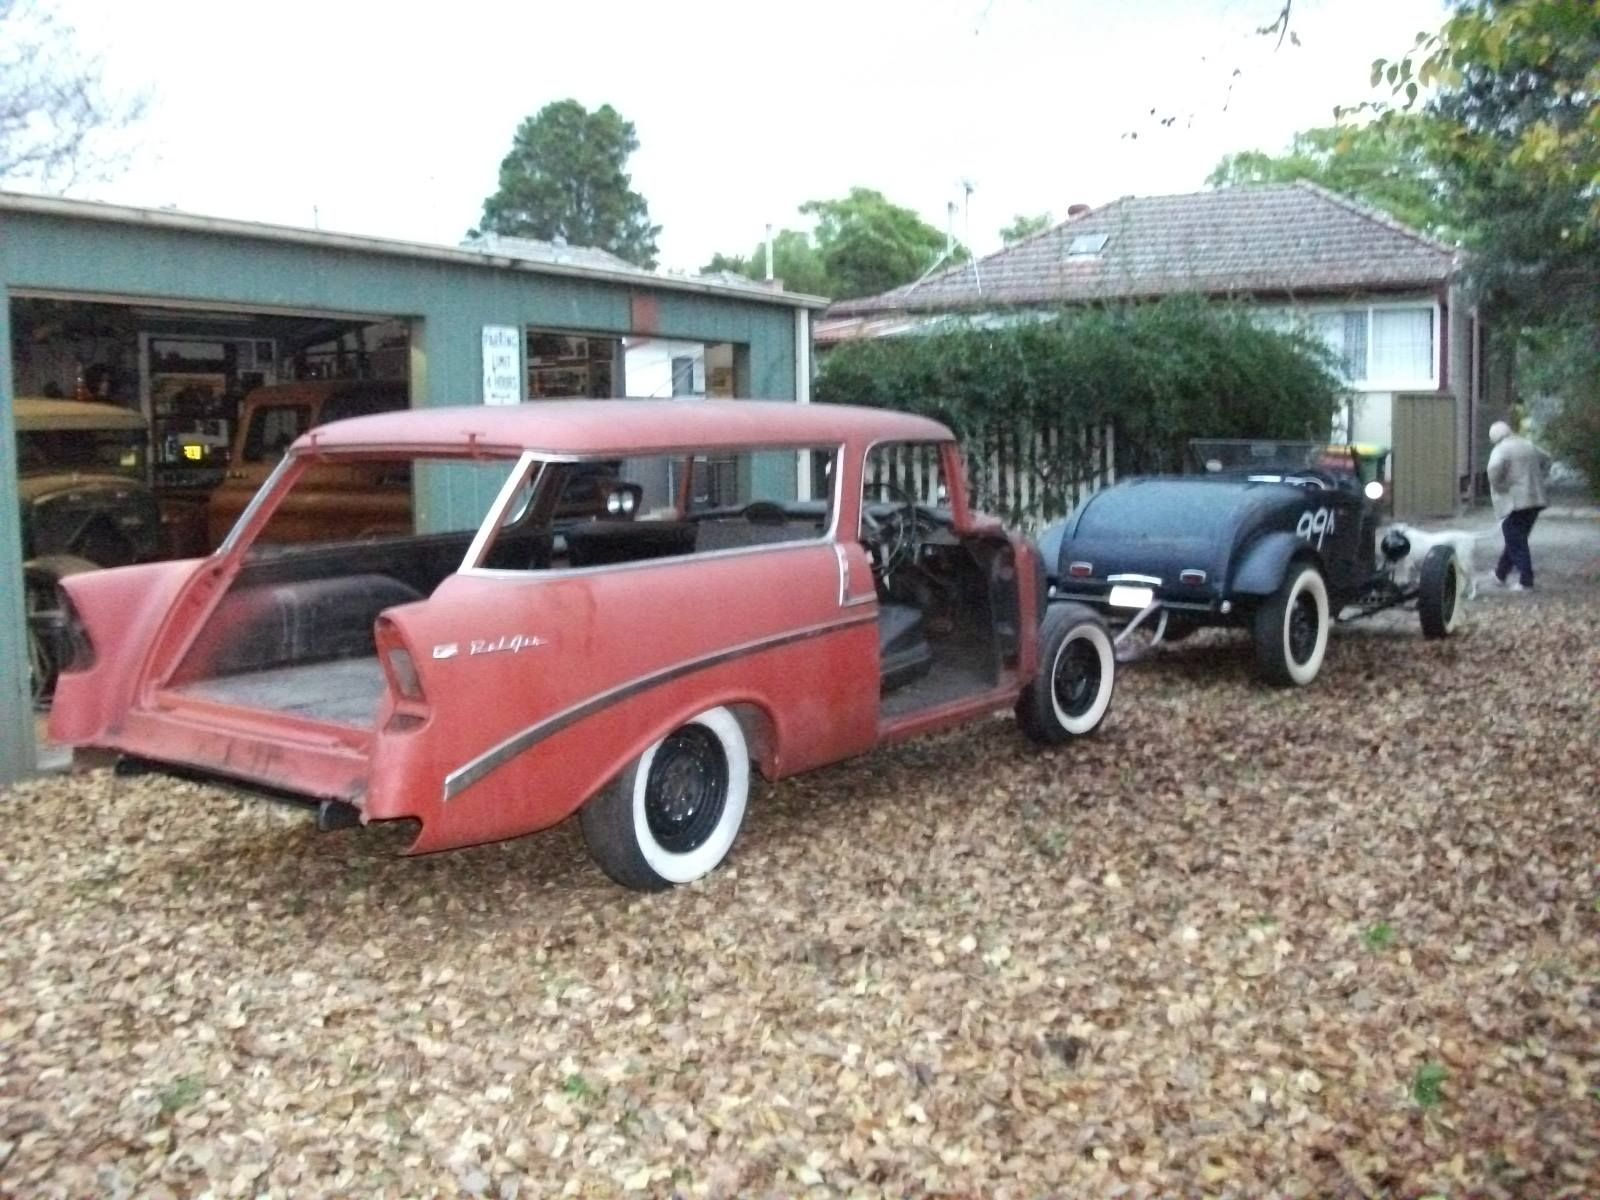 1956 Chev Nomad Bought At Blacktown Swap 1980s Converted To Rhd